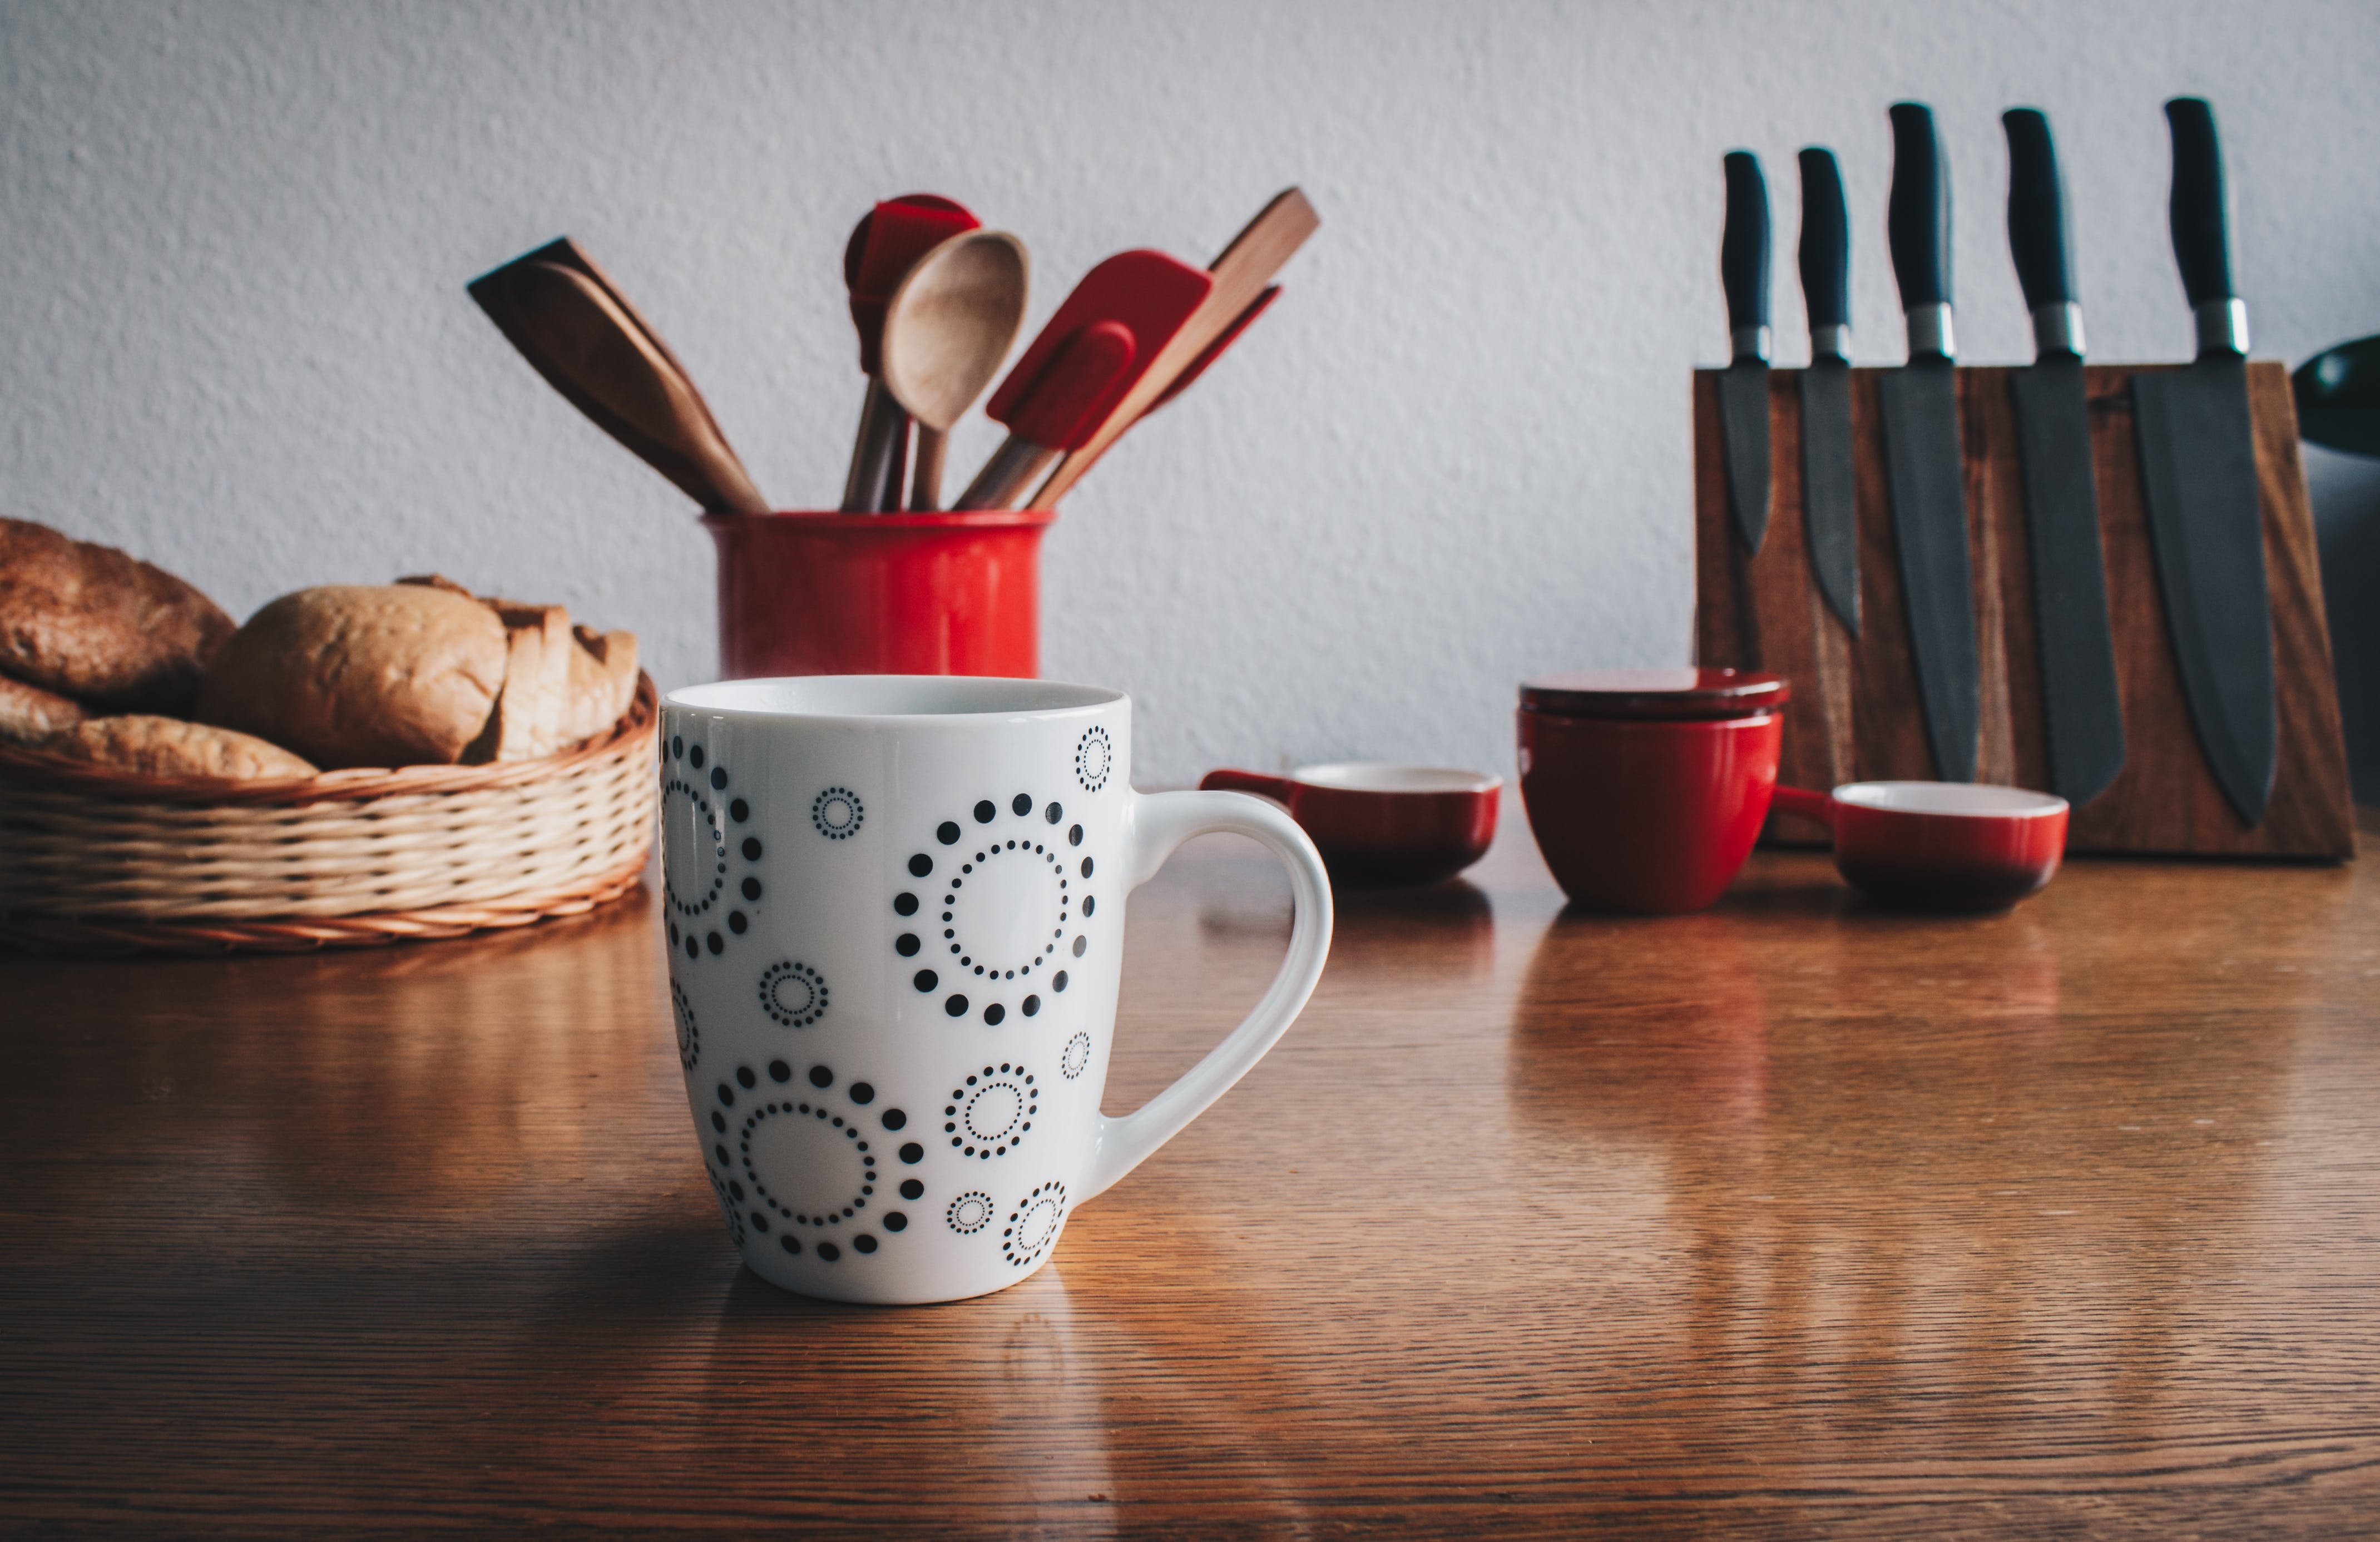 Mug in Front of Breads Beside Spatulas on Table